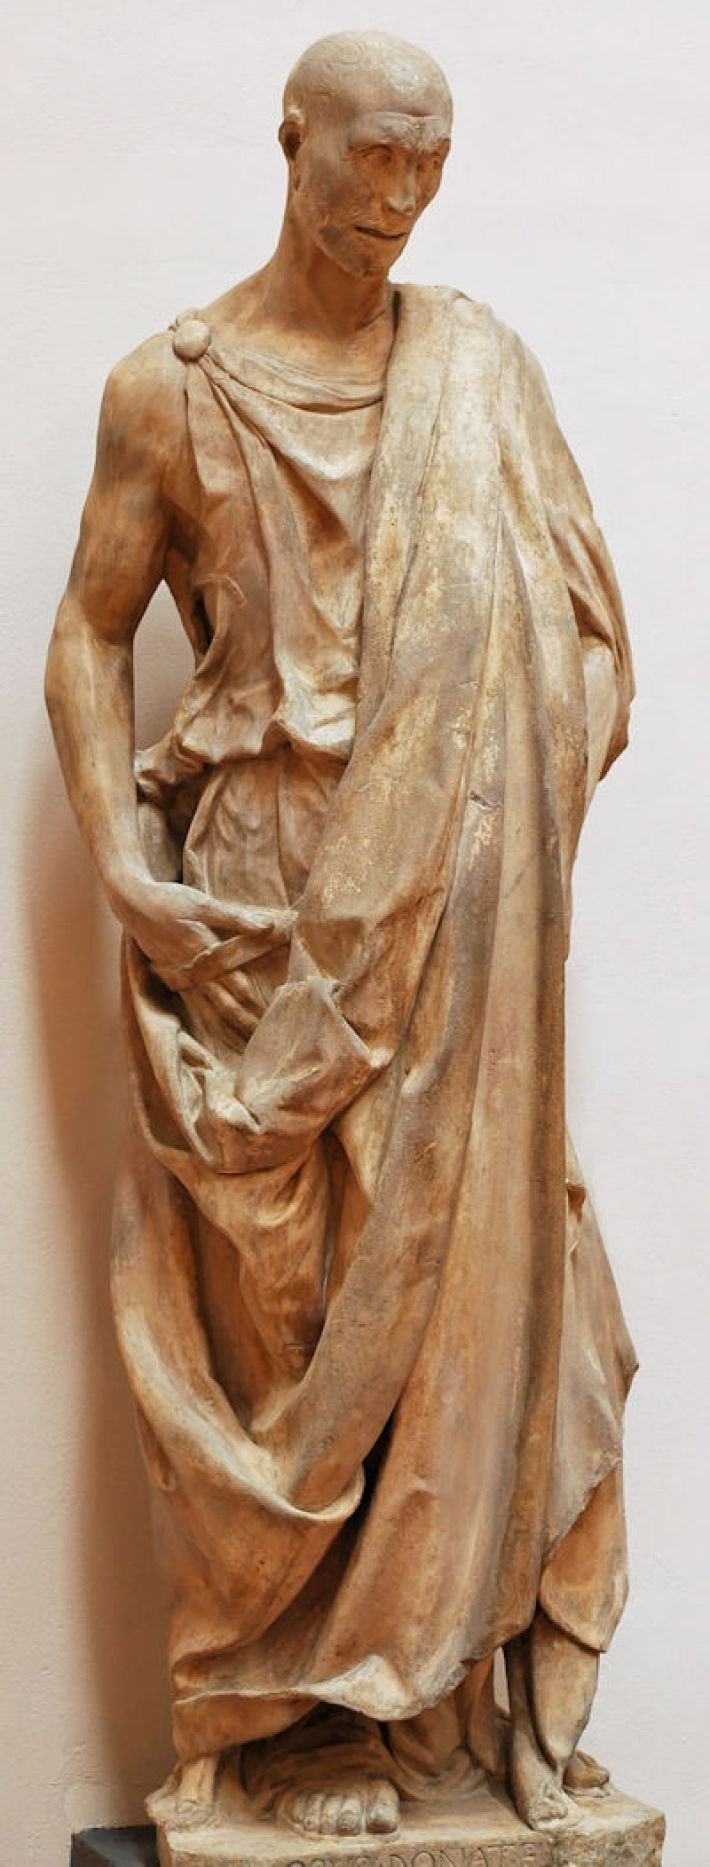 Donatello, Zuccone [Ook bekend als: 'De profeet Habakuk], 1423-25, marmer, hoogte: 196 cm, Museo dell'Opera del Duomo, Florence